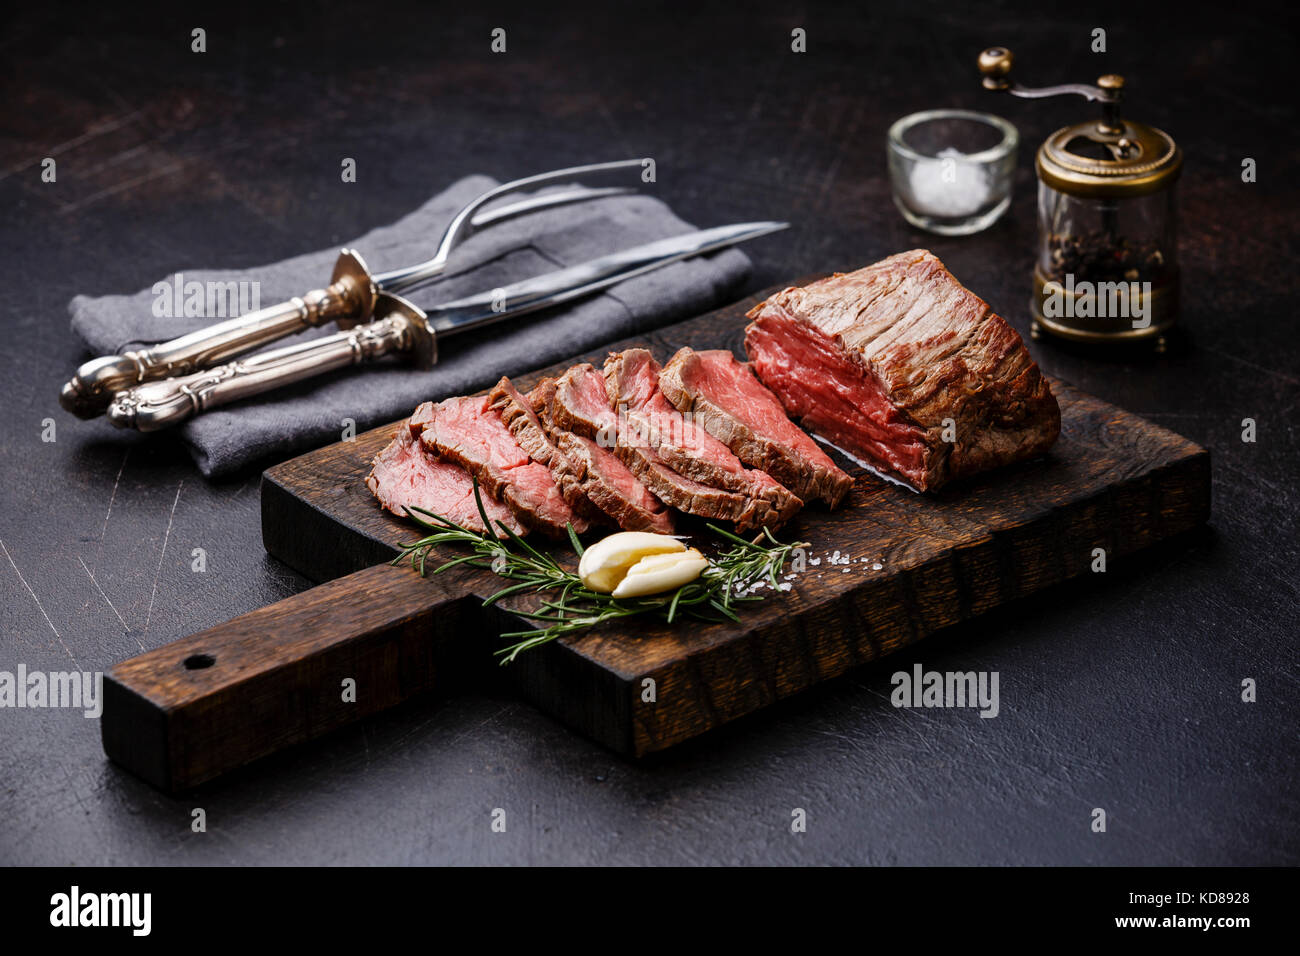 Sliced Tenderloin meat Roast beef on cutting board with knife and fork carving set, saltcellar and pepper mill - Stock Image